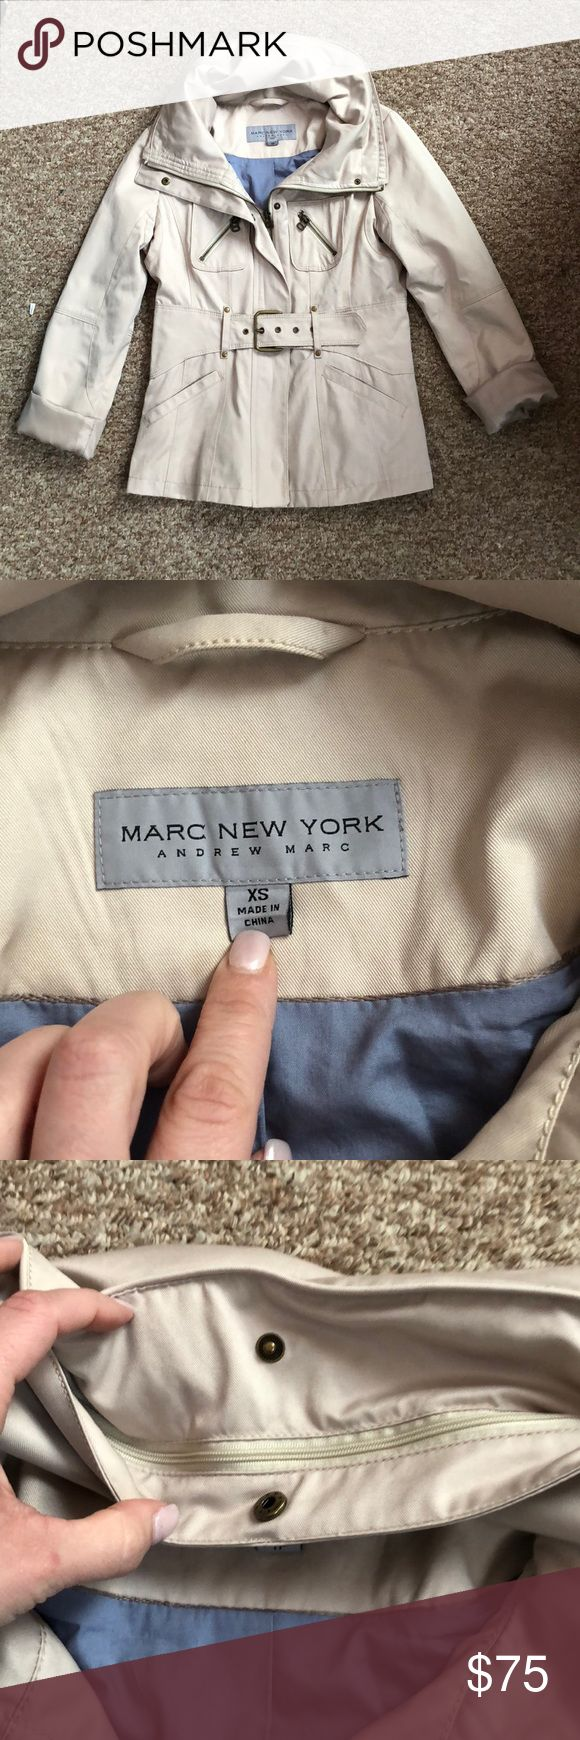 MARC NEW YORK ANDREW MARC Coat Size XS MARC NEW YORK ANDREW MARC Coat...Size XS...Jacket is in Great Condition... The Coat has a Hide Away Hood and the Sleeves can be Rolled up! Andrew Marc Jackets & Coats Trench Coats